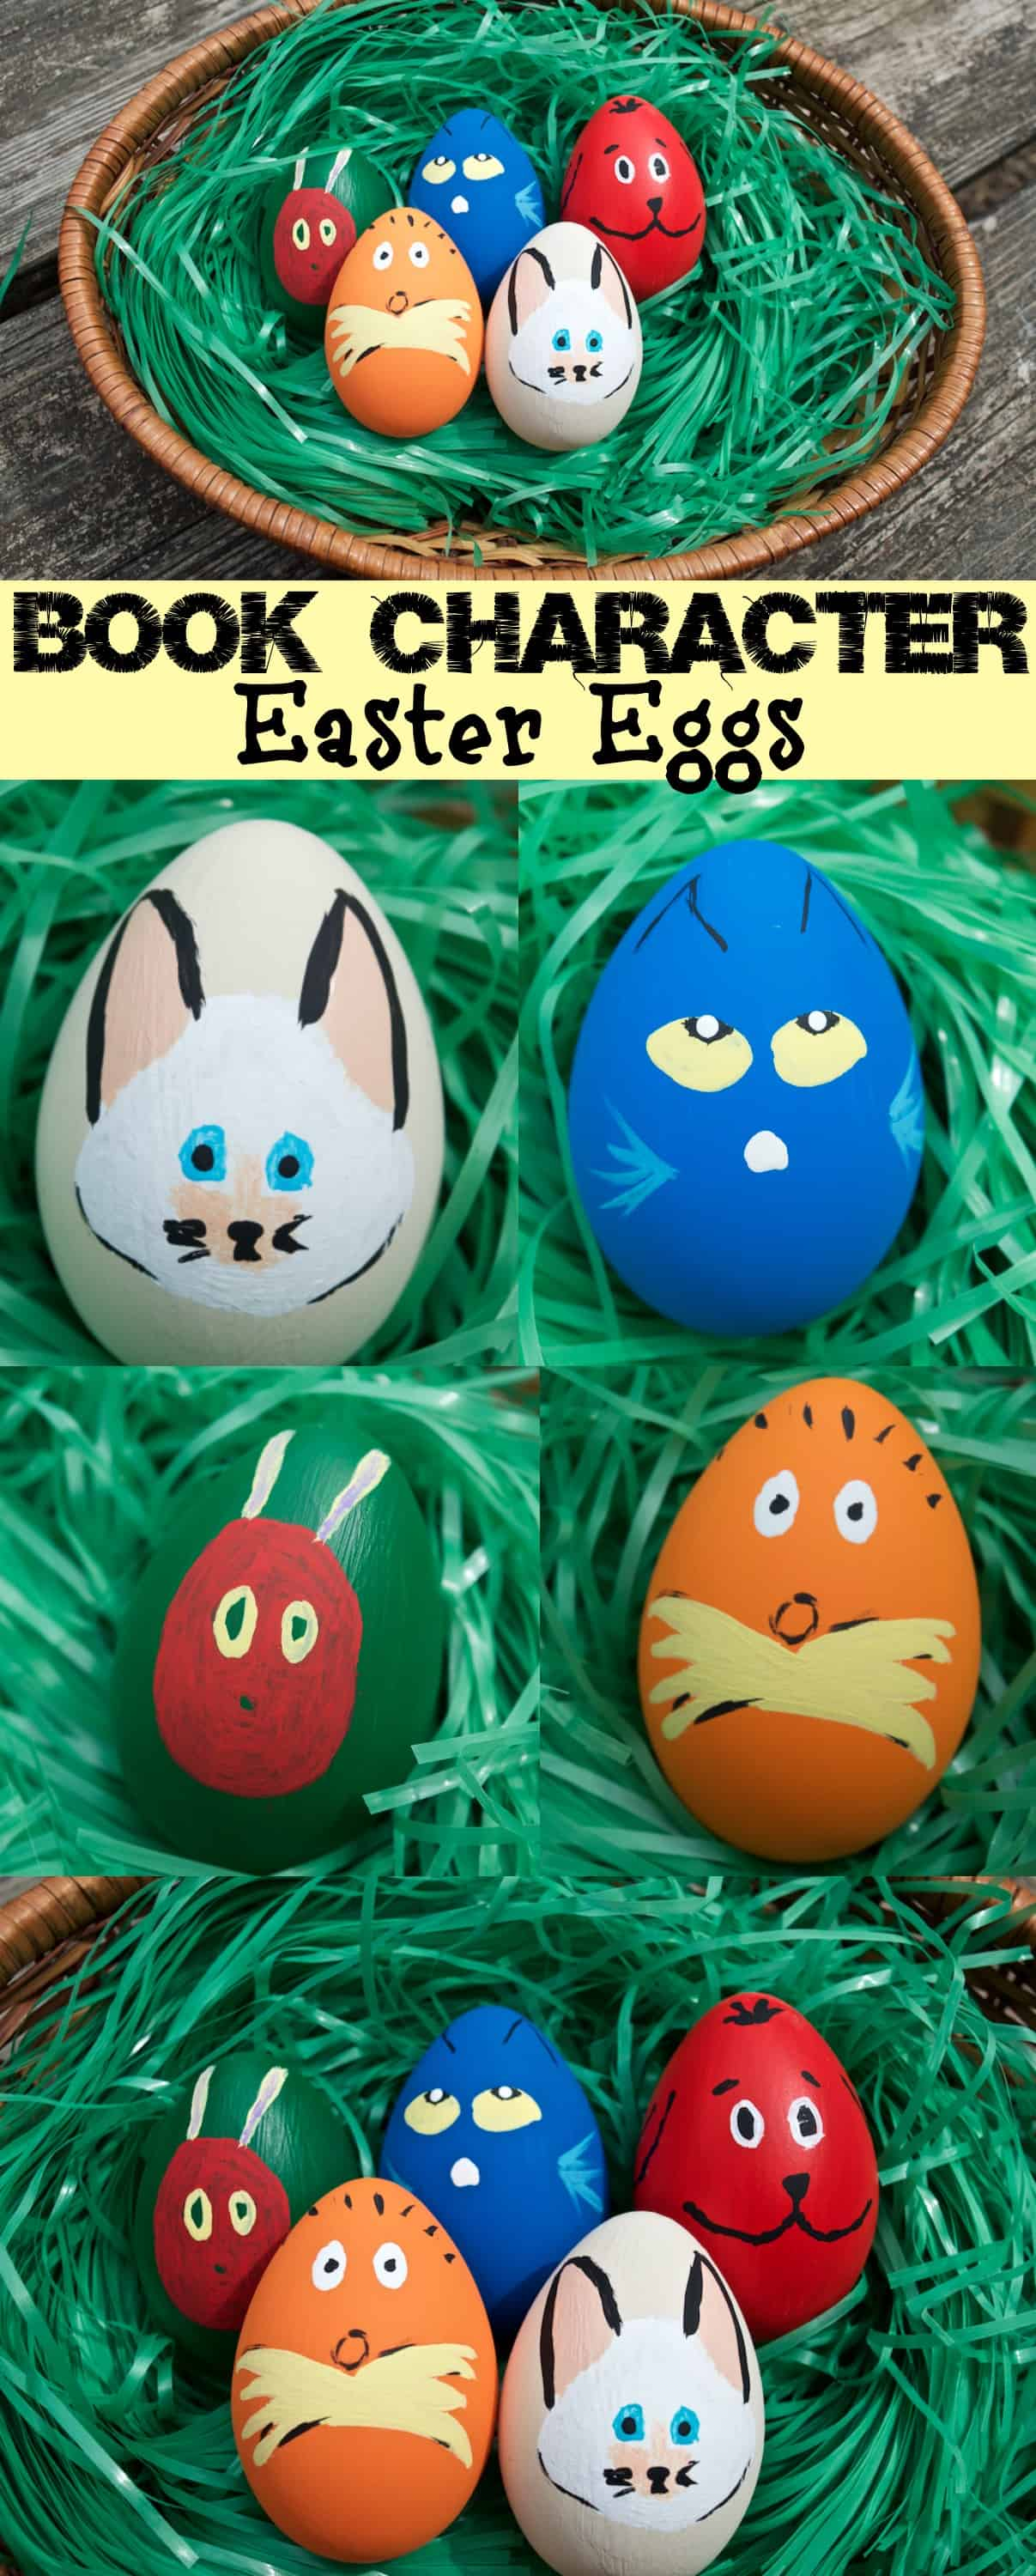 Children's Book Character Easter Eggs